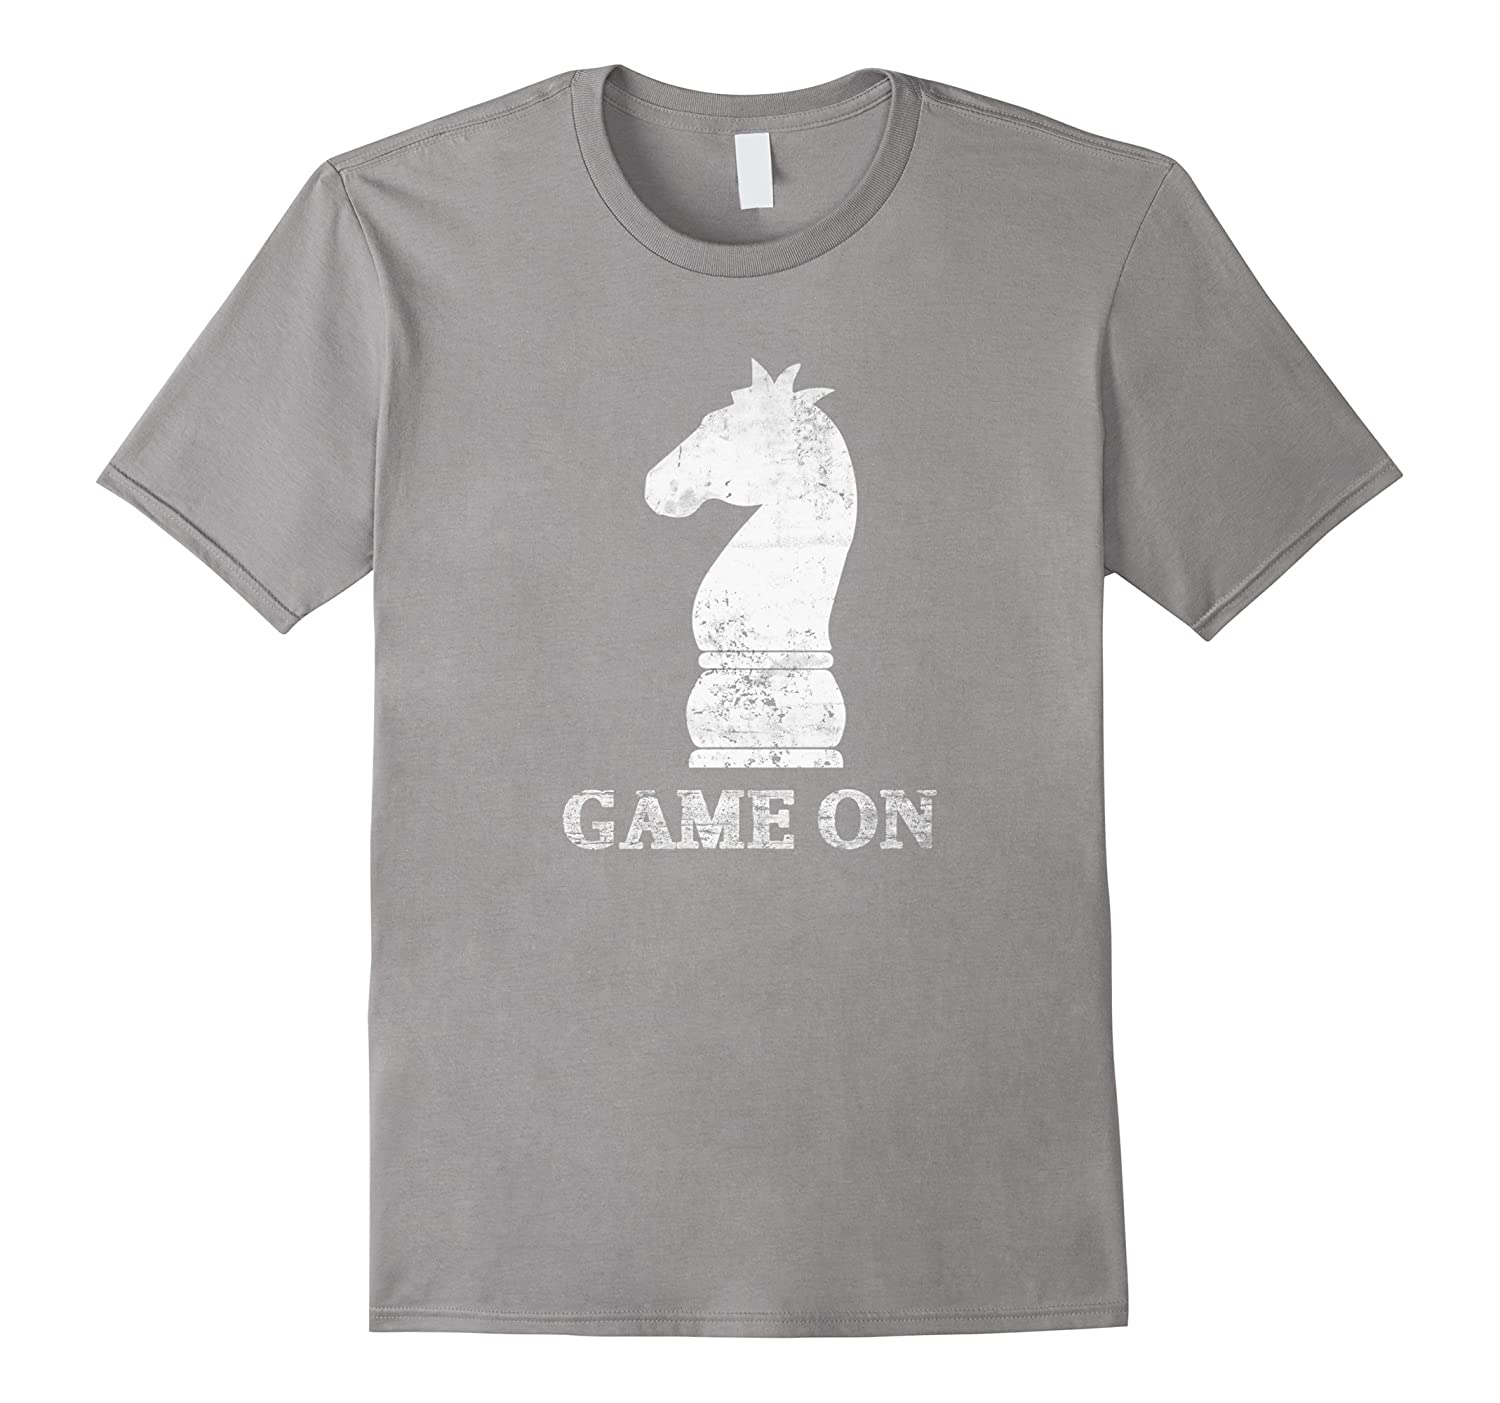 Chess T-shirt Game On-ah my shirt one gift